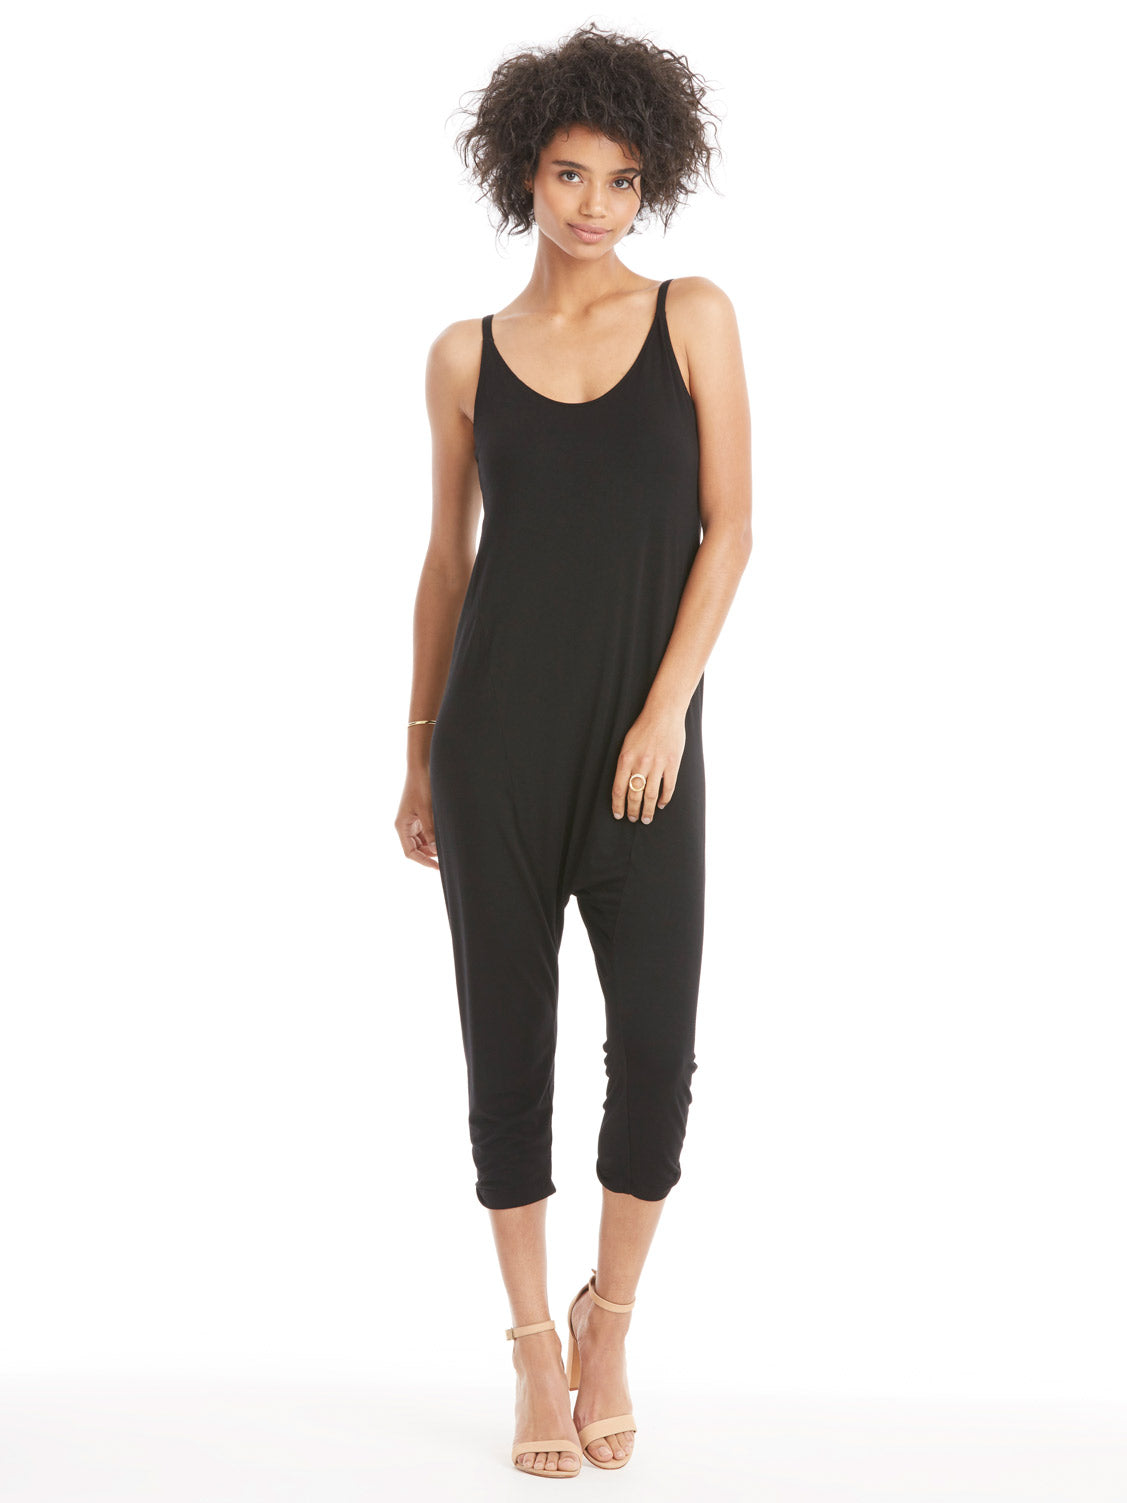 TILDEN | Enza Costa Strappy Drop Rise Jumpsuit